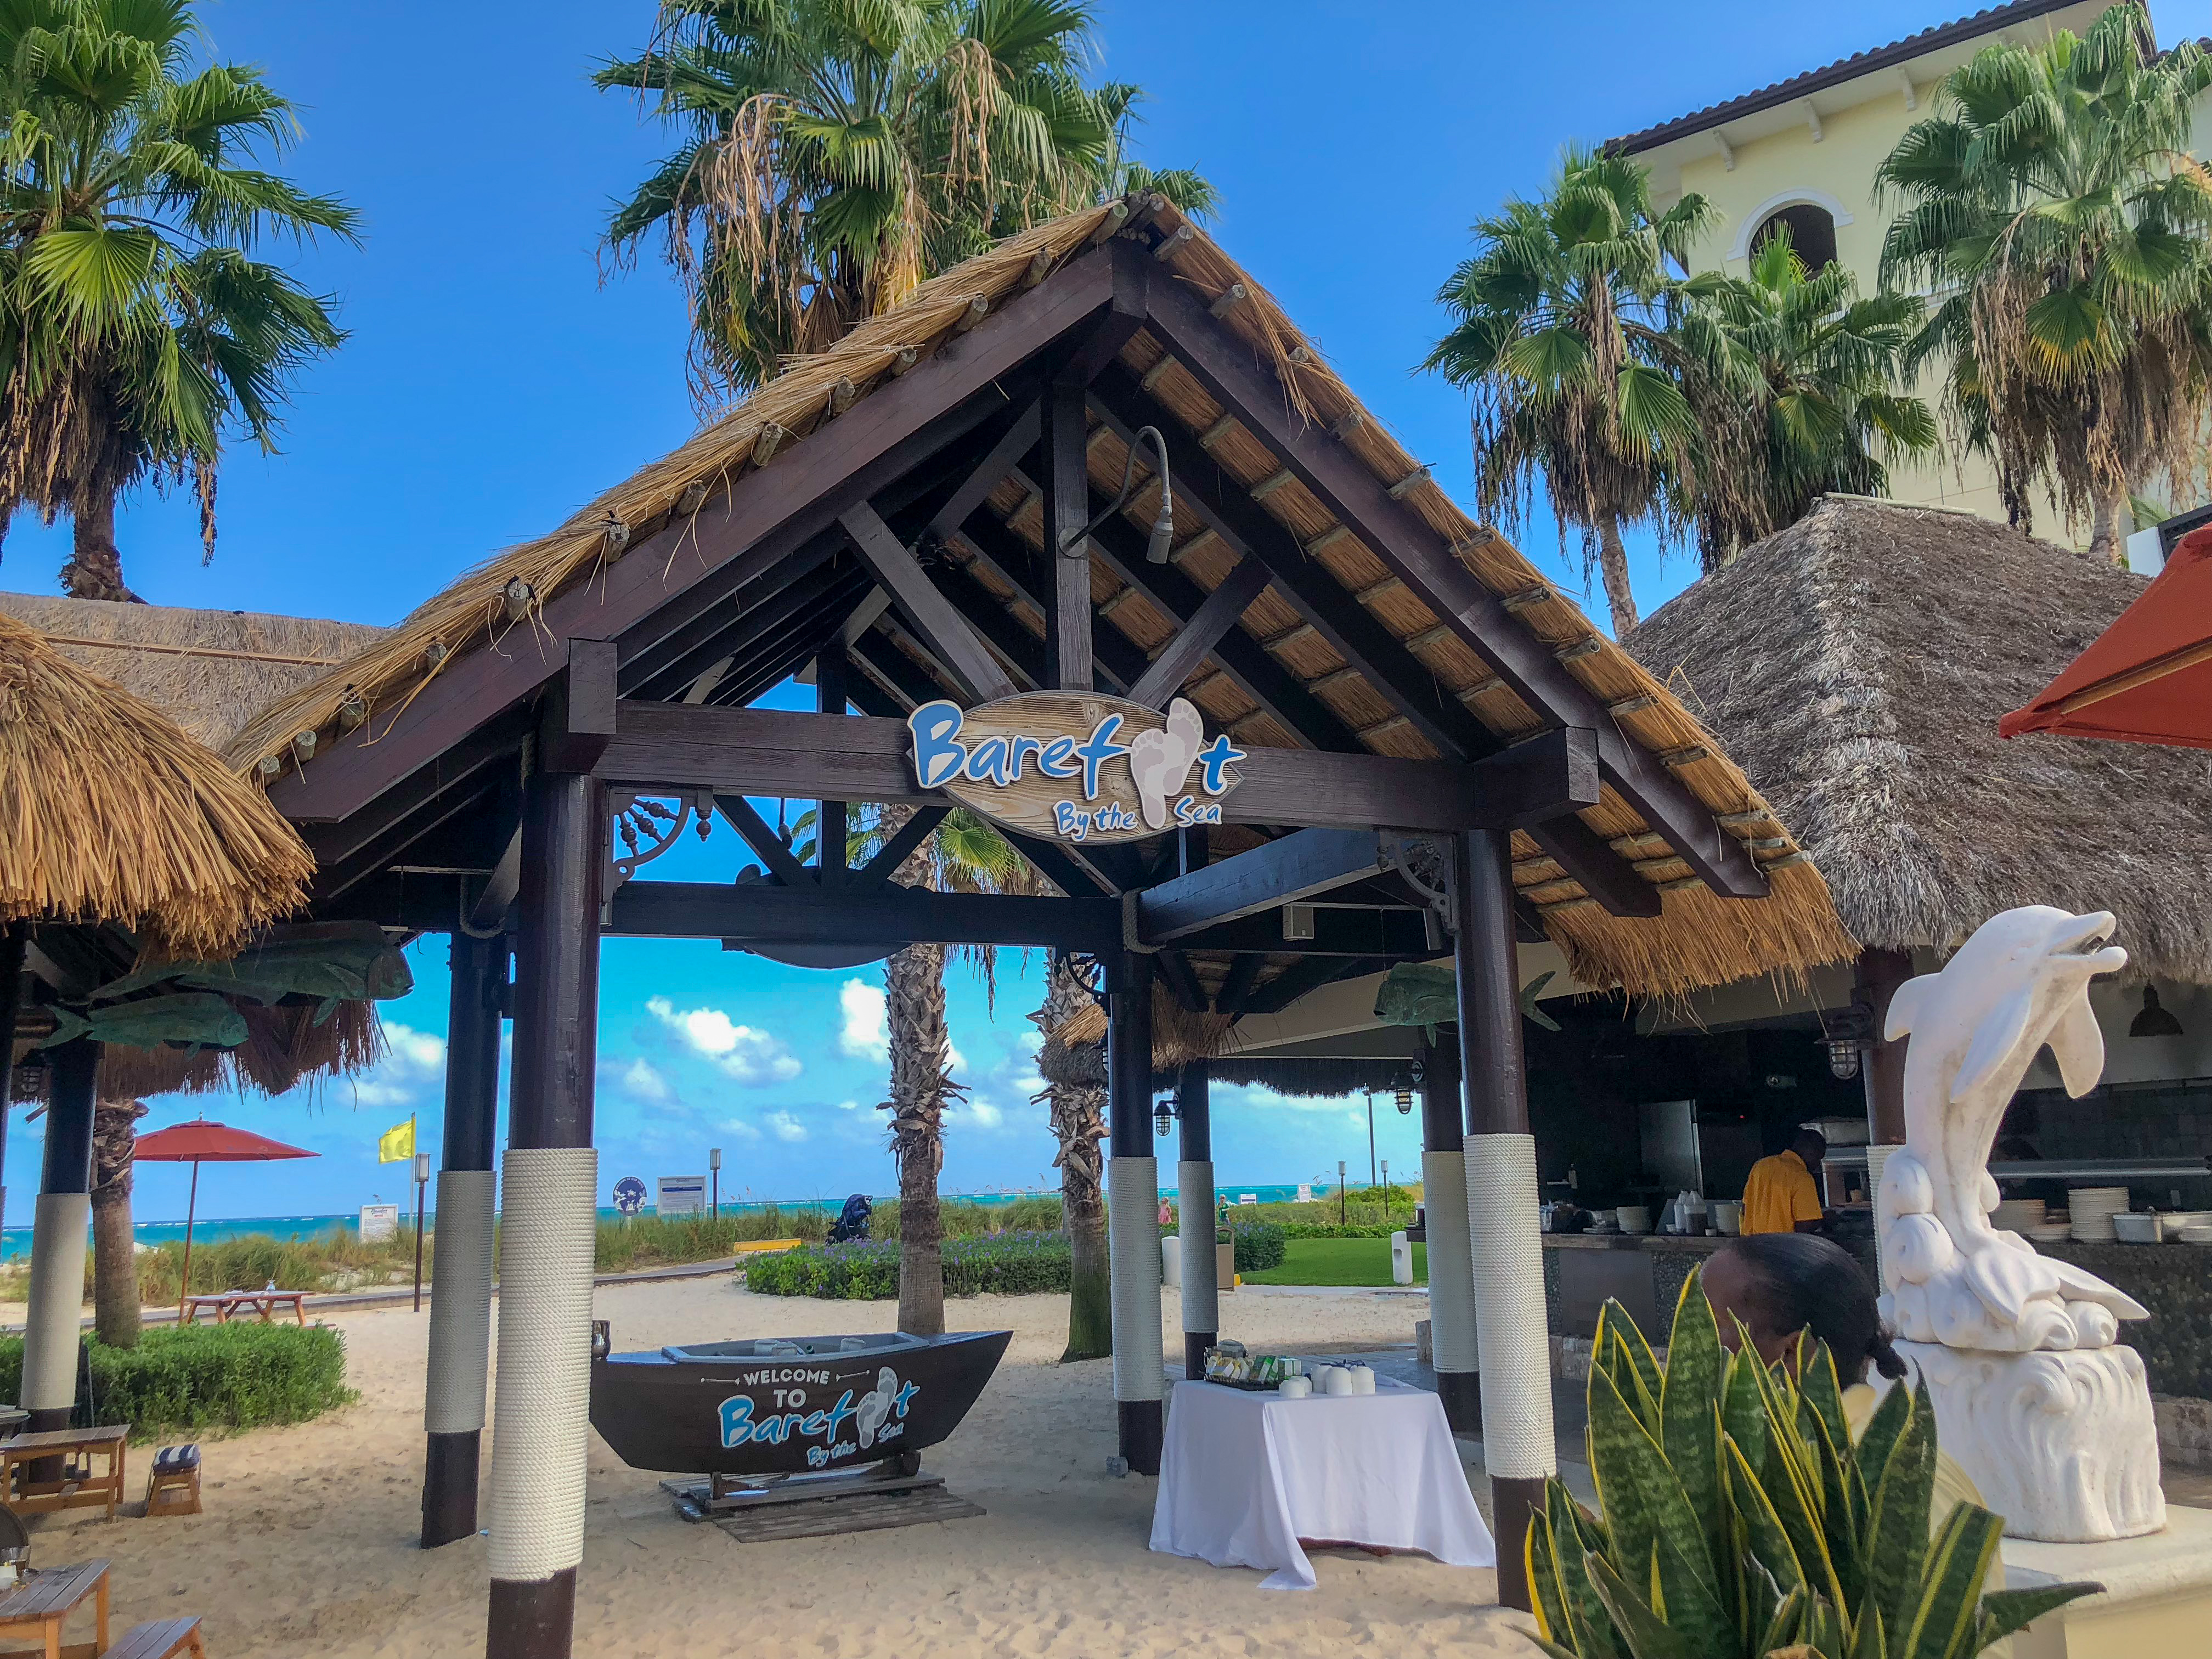 Dining with Hypothyroidism at Beaches Resort in Turks and Caicos #thyroid #thyroidhealth #hypothyroid #hypothyroism #hashimotos #dietaryrestrictions #restaurantsatbeaches #beachesmoms #beachesturksandcaicos #beachesresorts